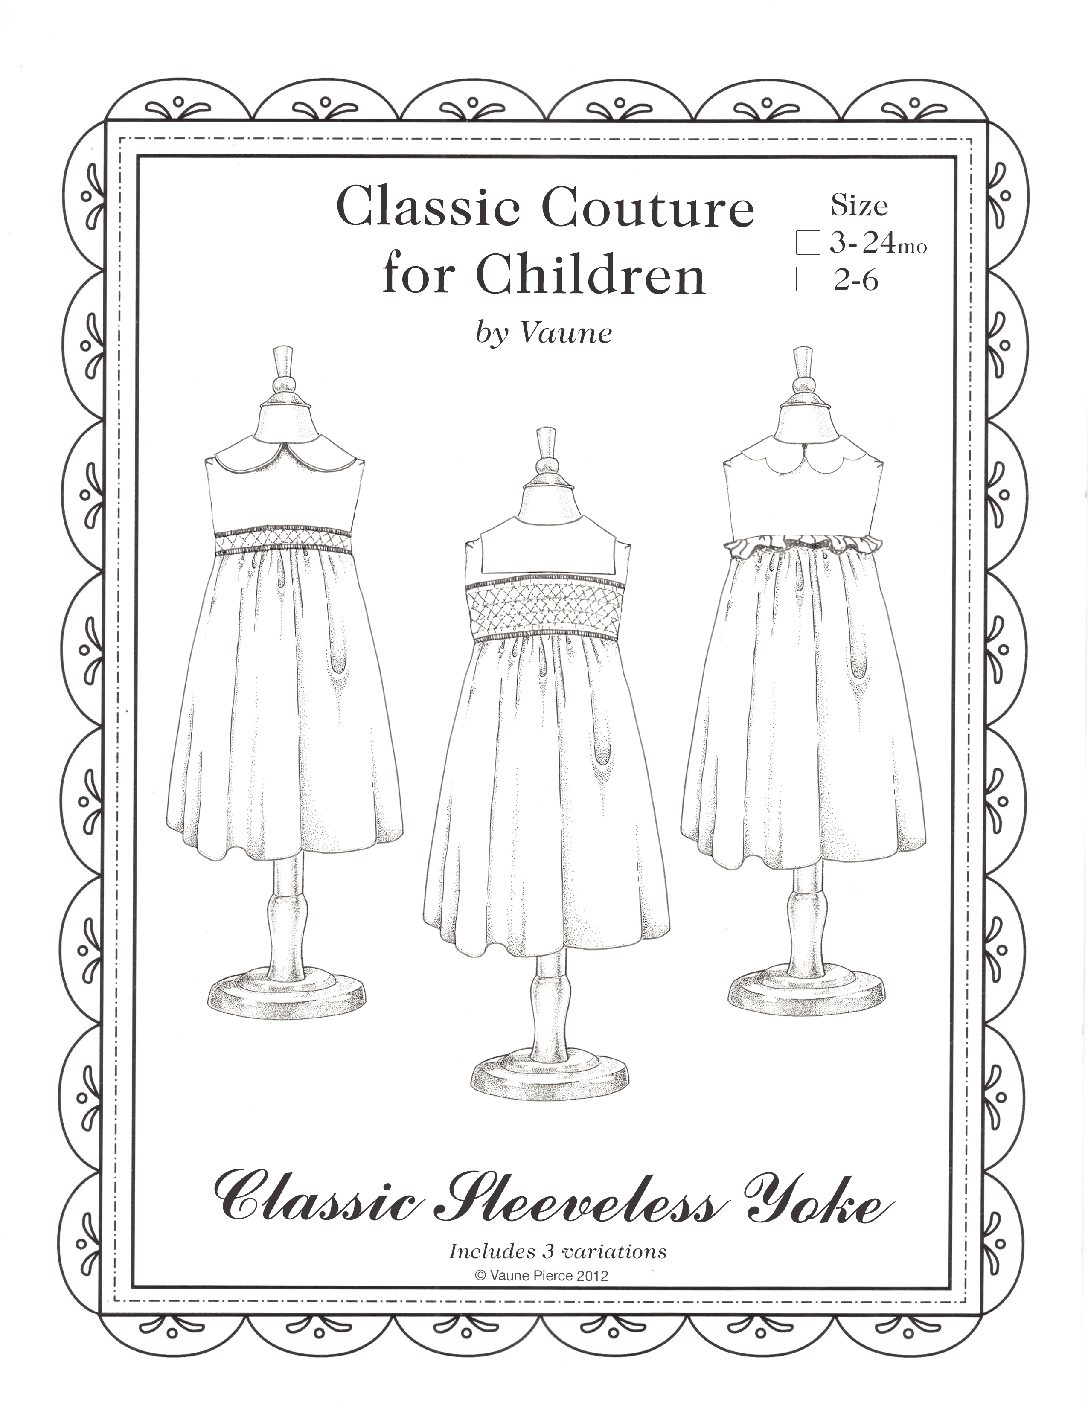 Classic Couture